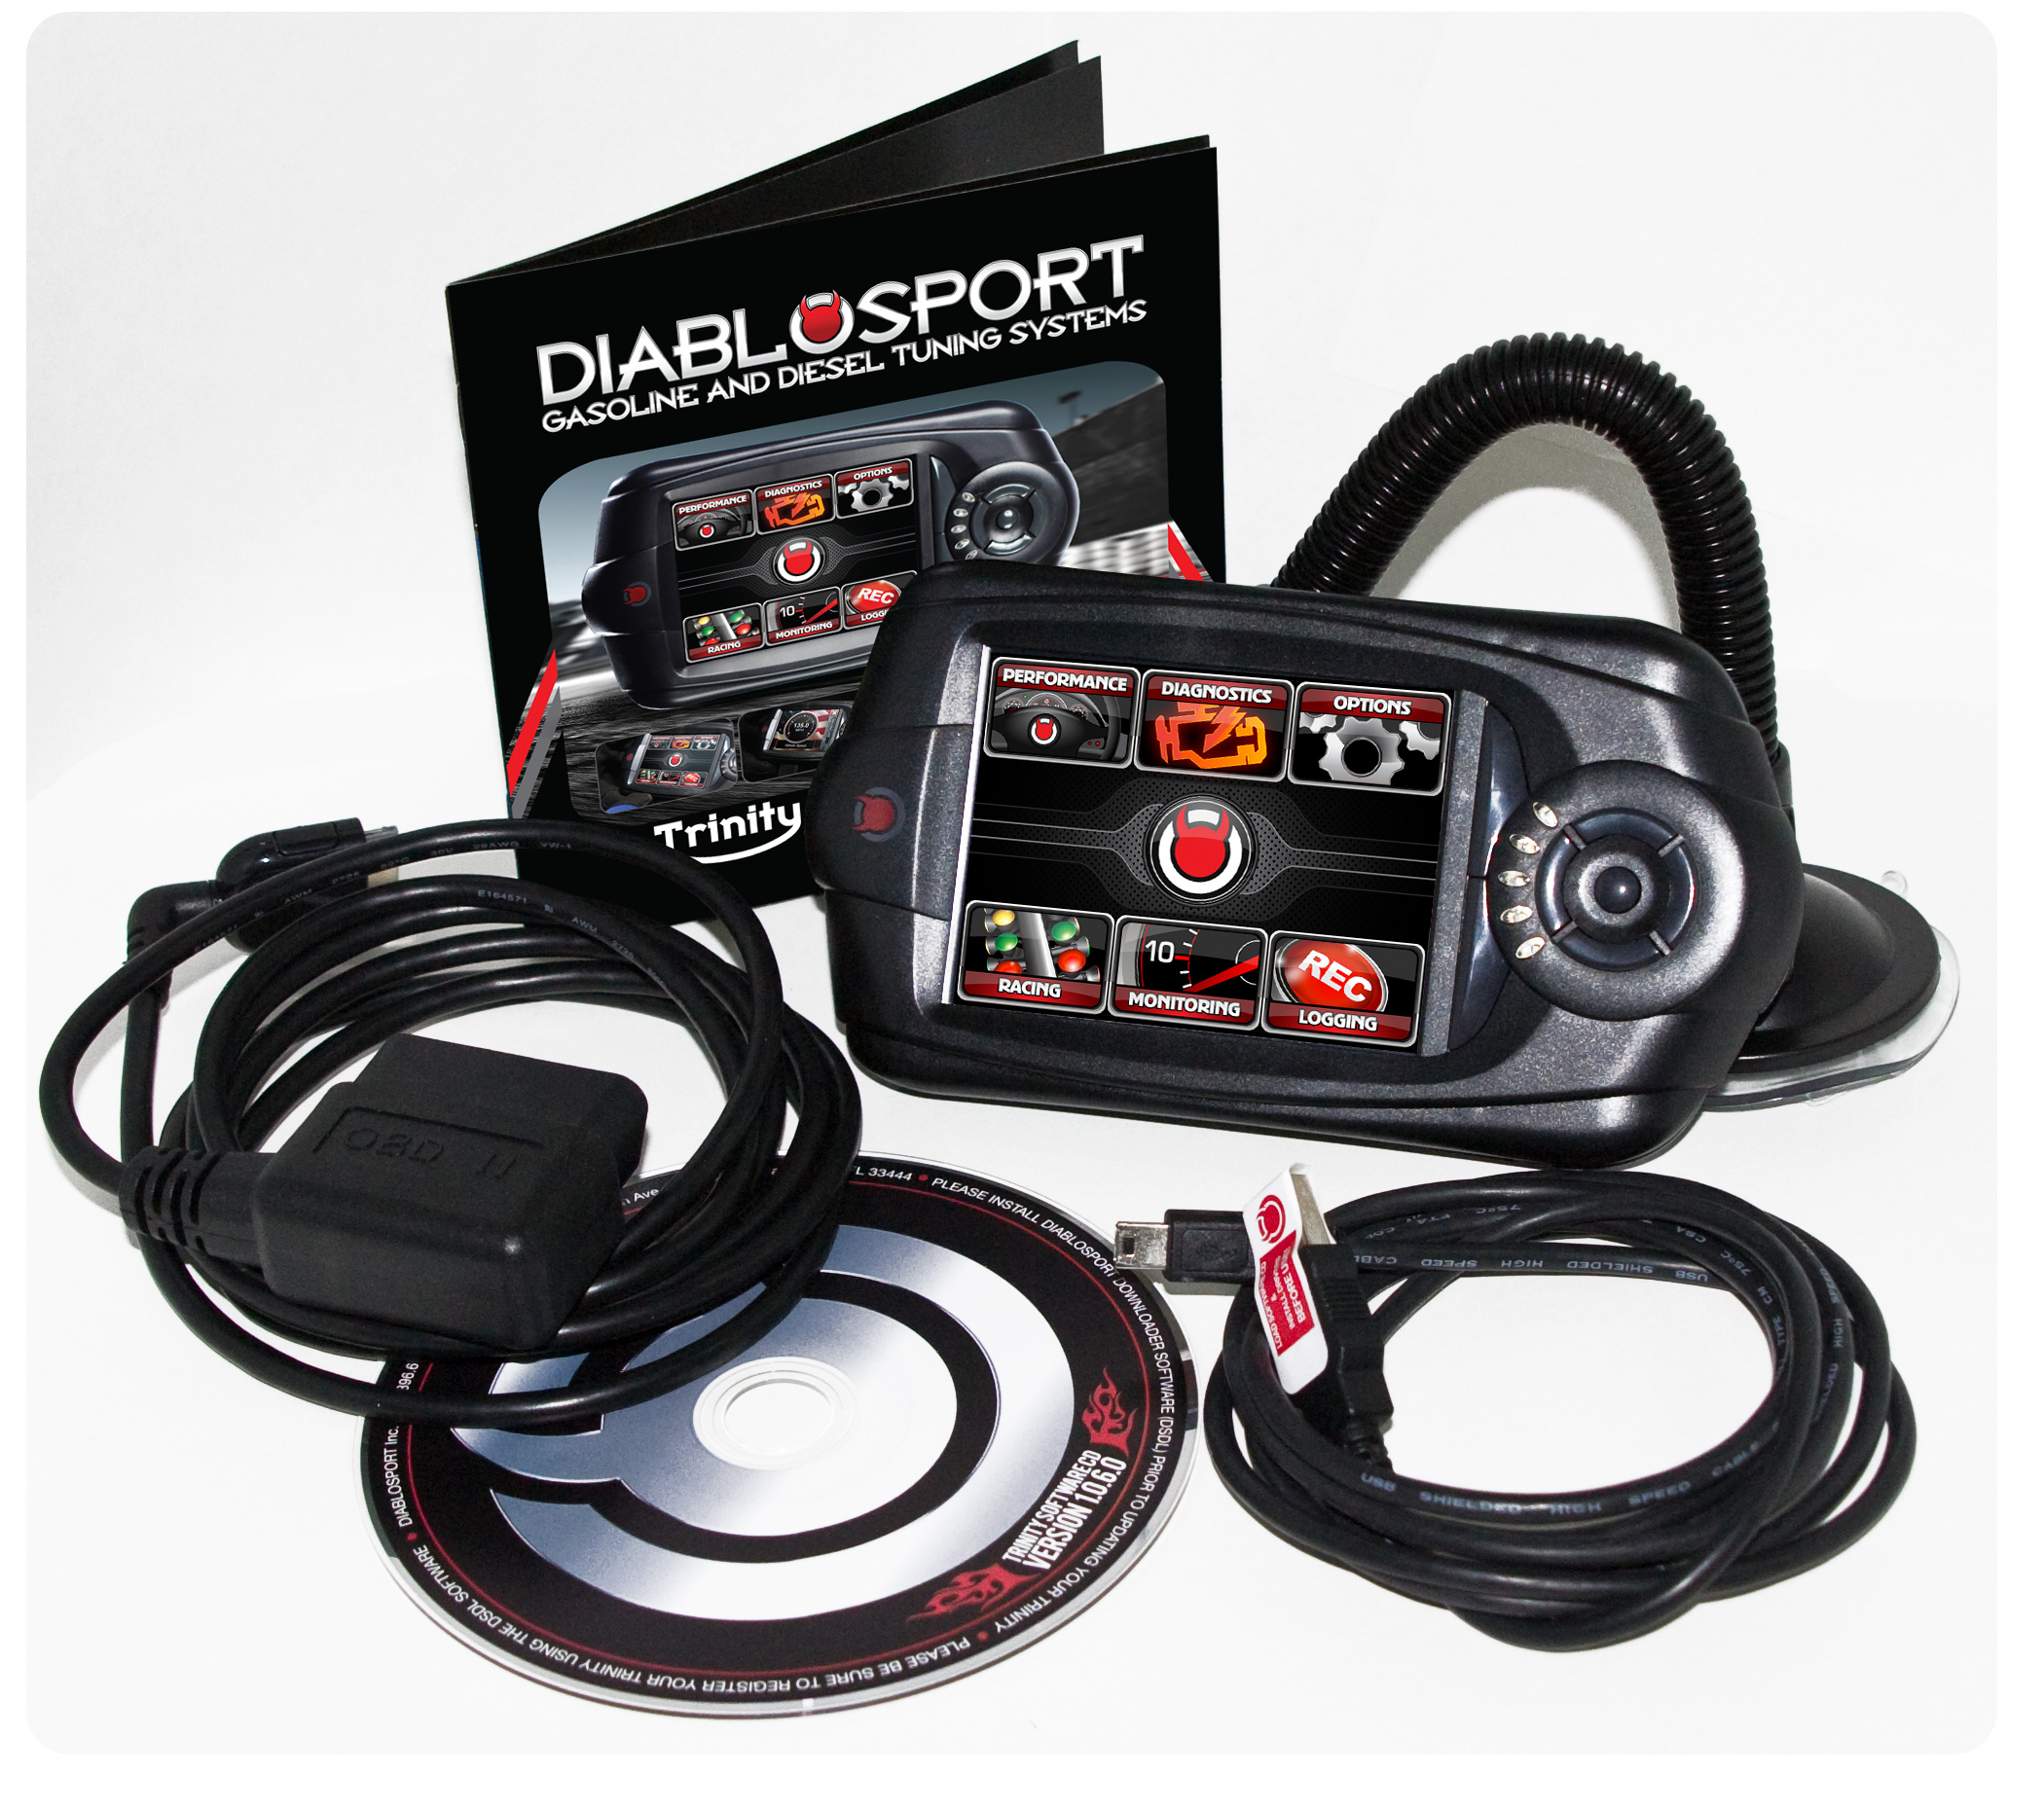 Gmc Sierra 2007-2012  8.1l Diablosport T1000 Trinity Performance Tuner